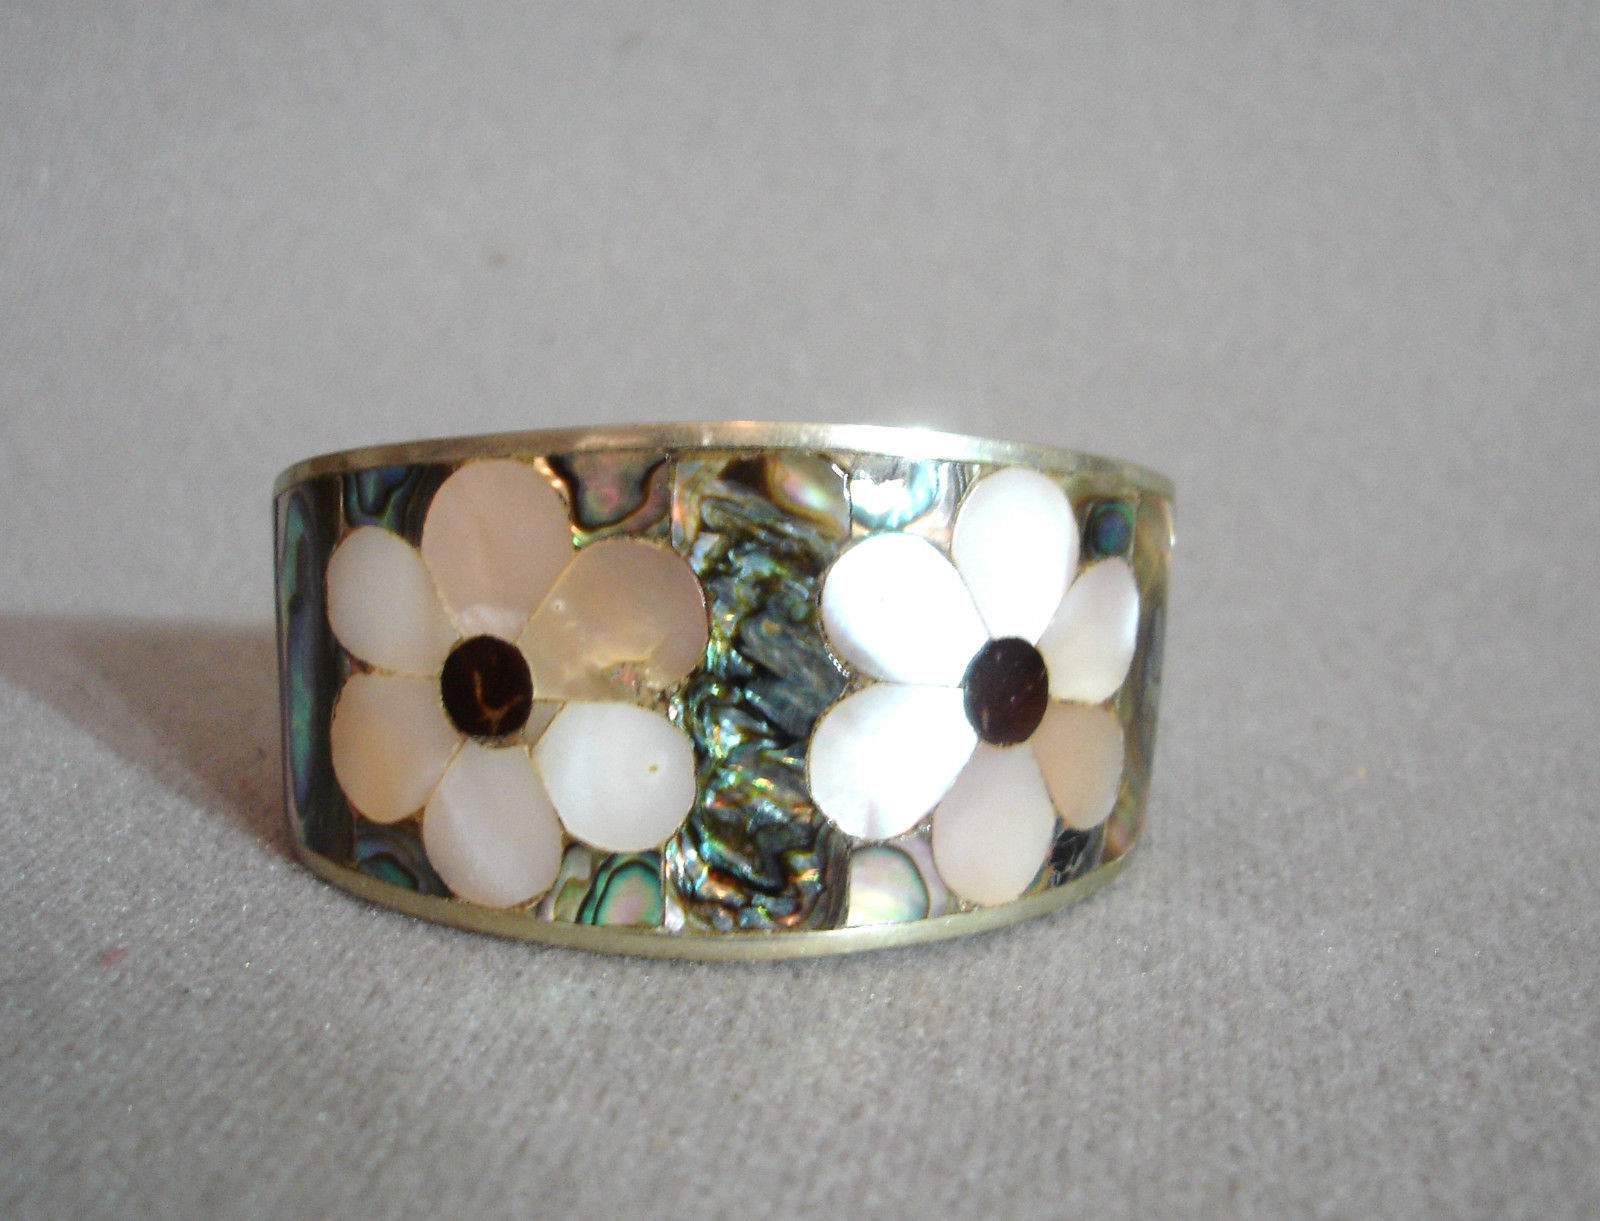 Vintage Sterling Hencho en Mexico Mother of Pearl/Abalone Cuff Bracelet